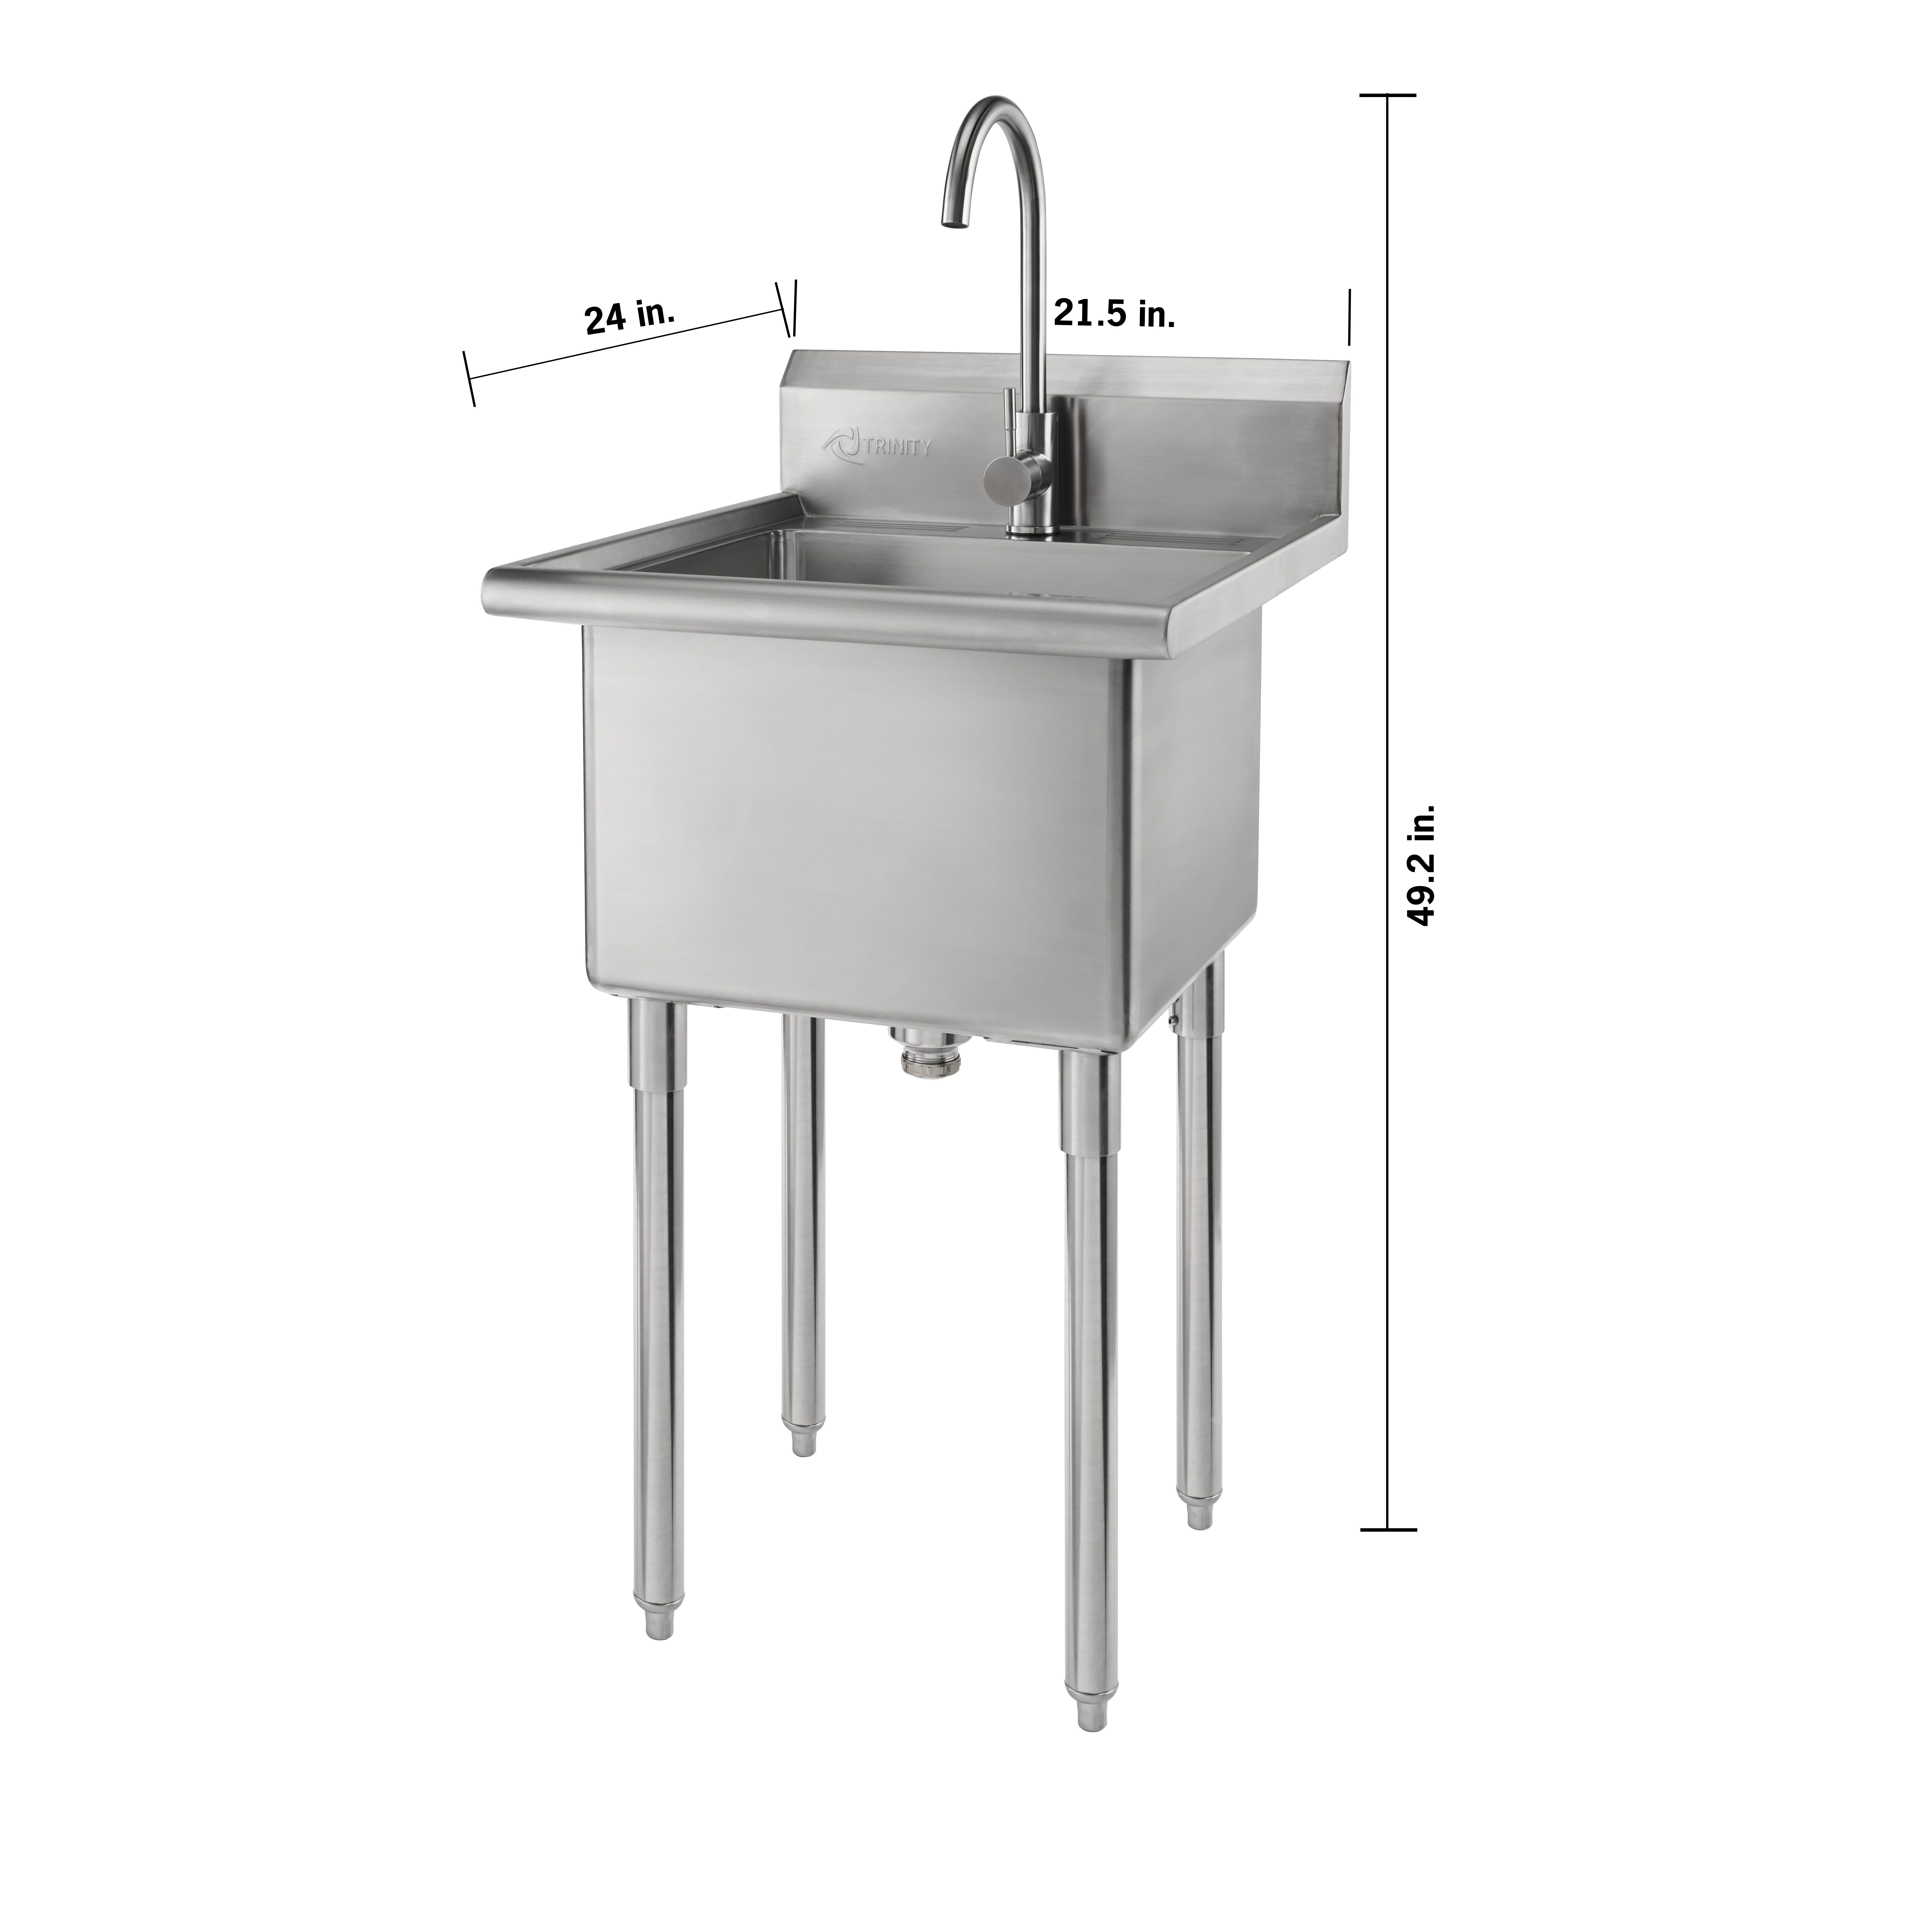 21 5 L X 24 W Free Standing Laundry Sink With Faucet Laundry